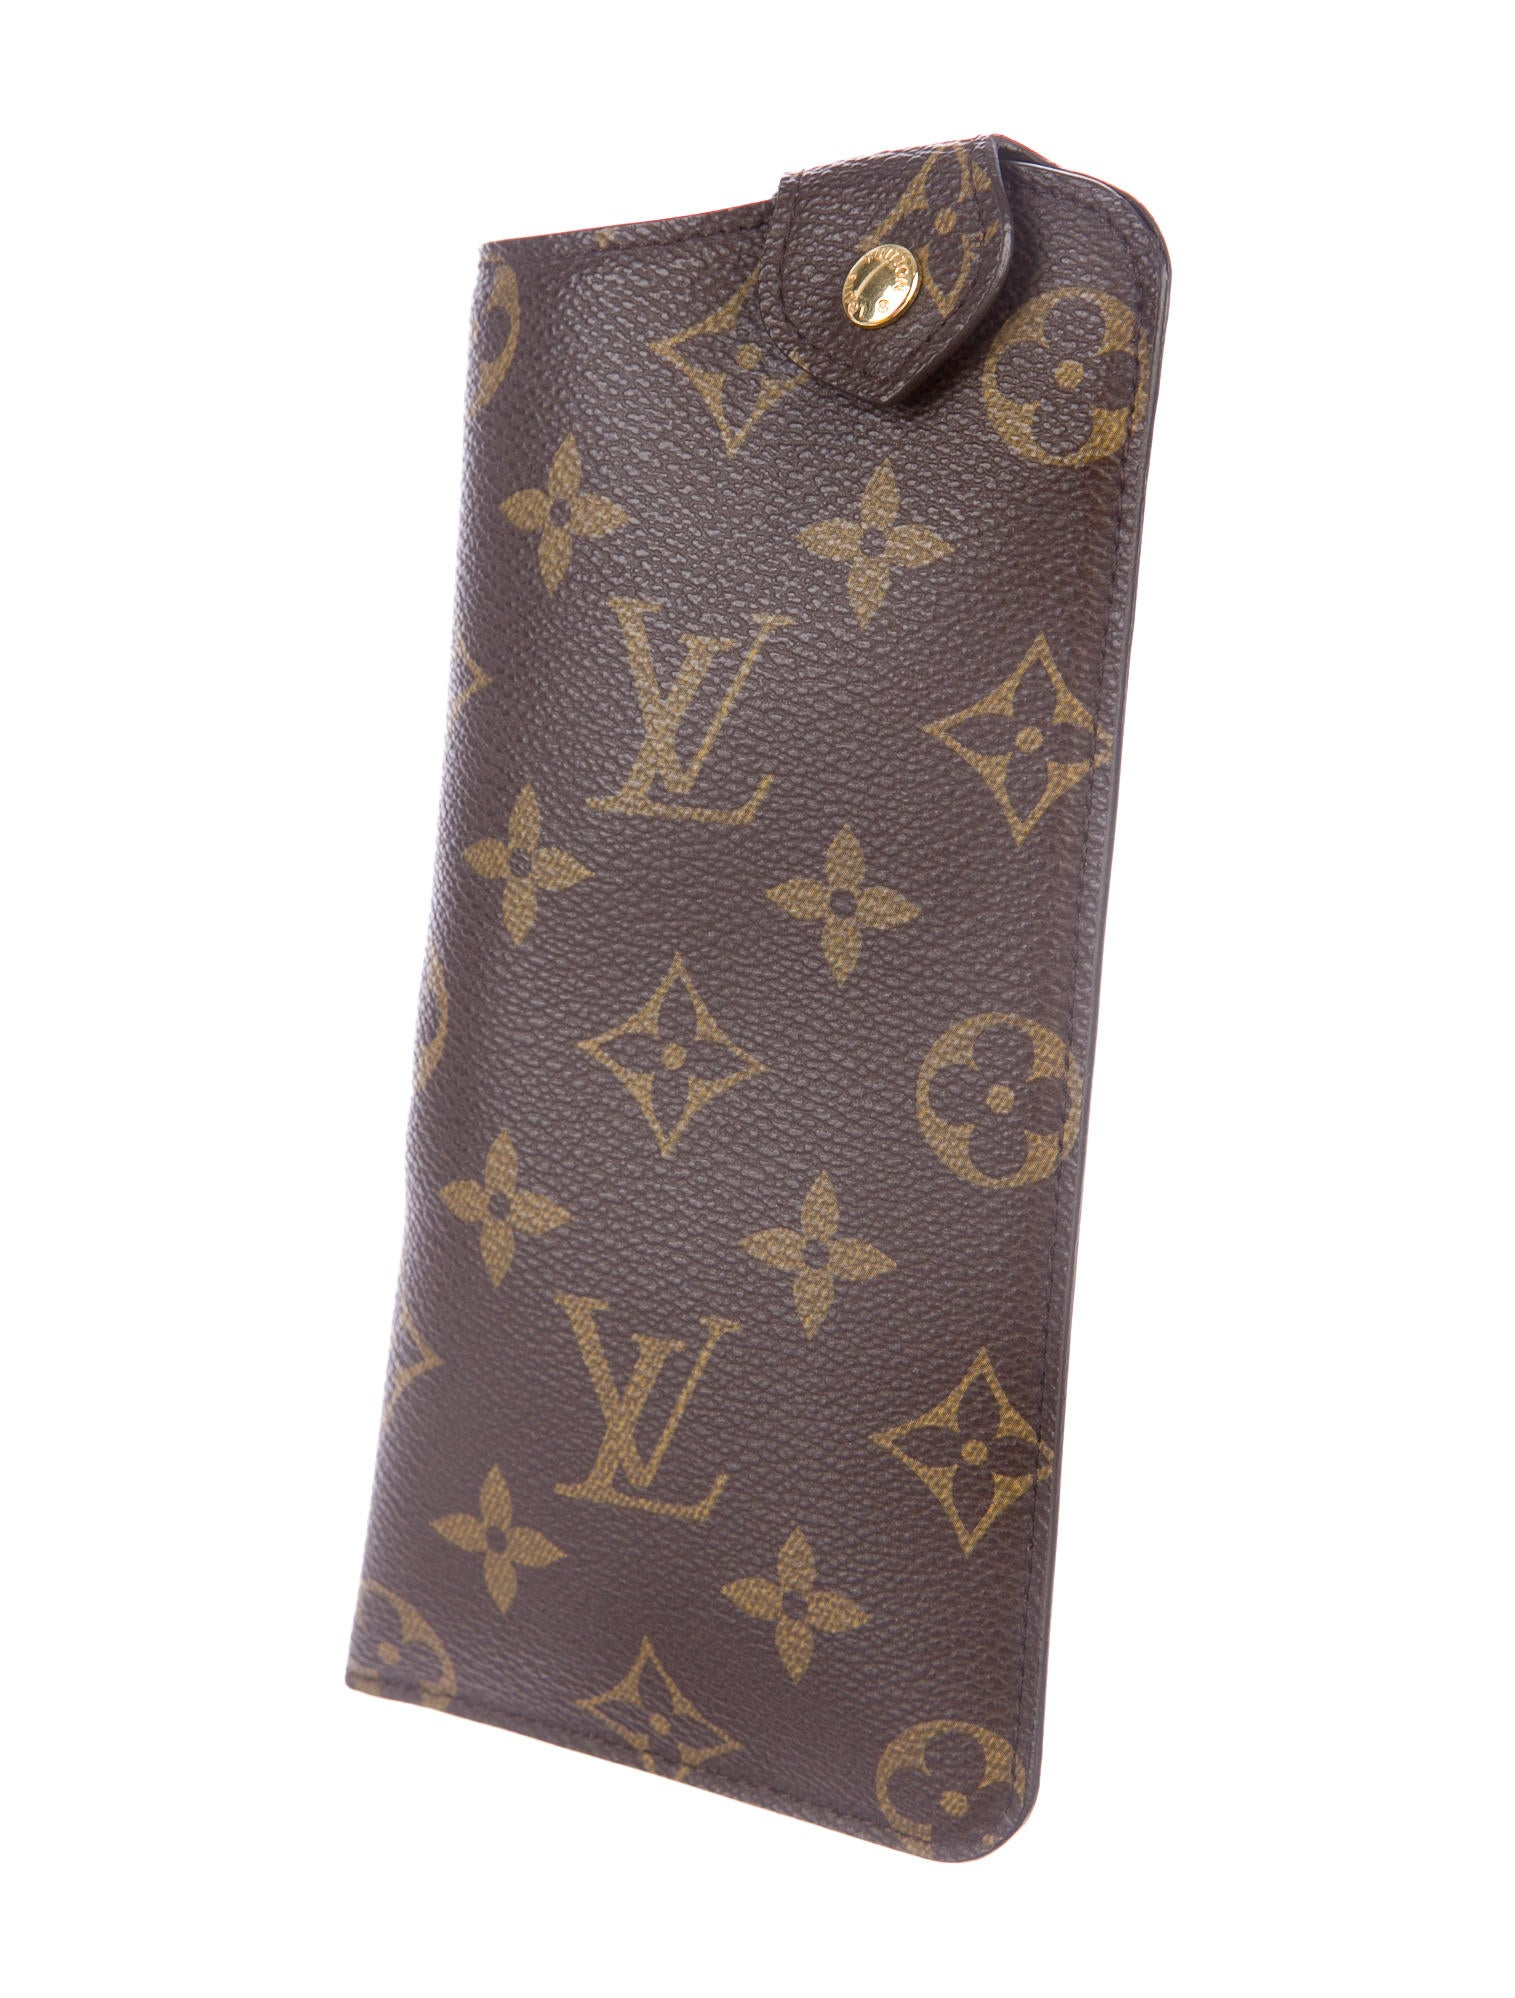 Louis Vuitton Sunglass Case  louis vuitton sunglasses case mm accessories lou42625 the